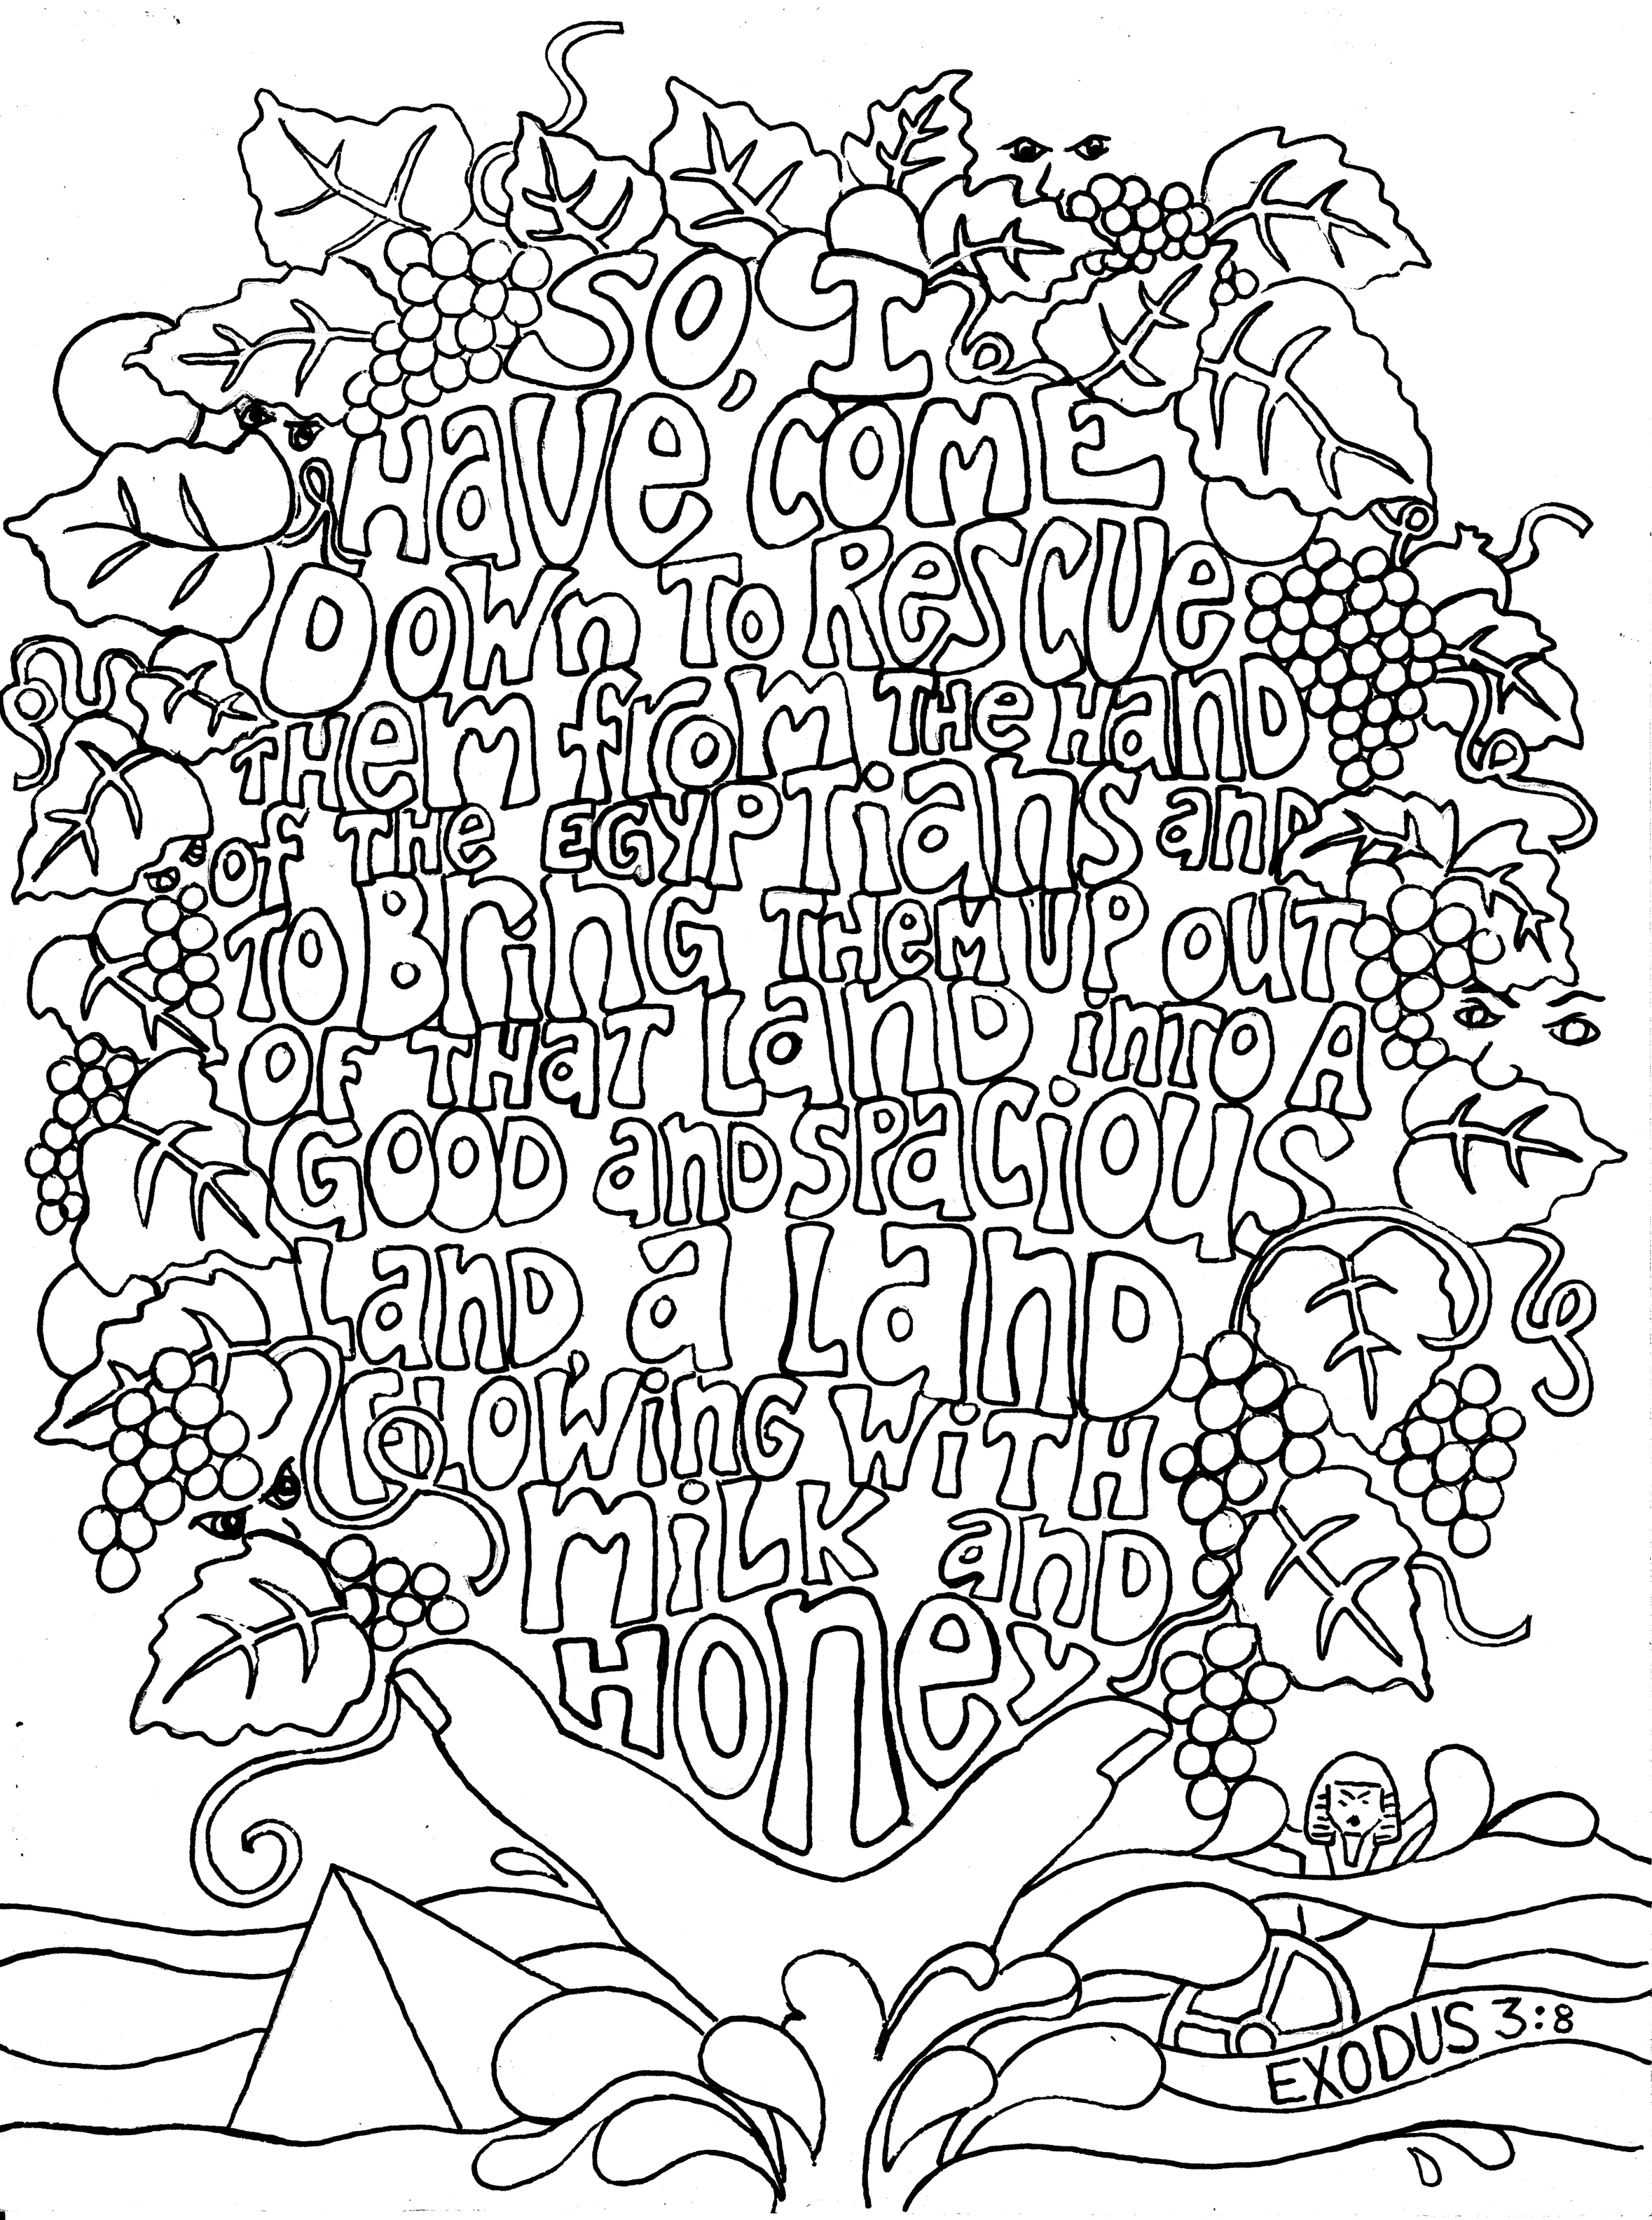 27 Free Bible Coloring Pages to Print Download - Coloring Sheets